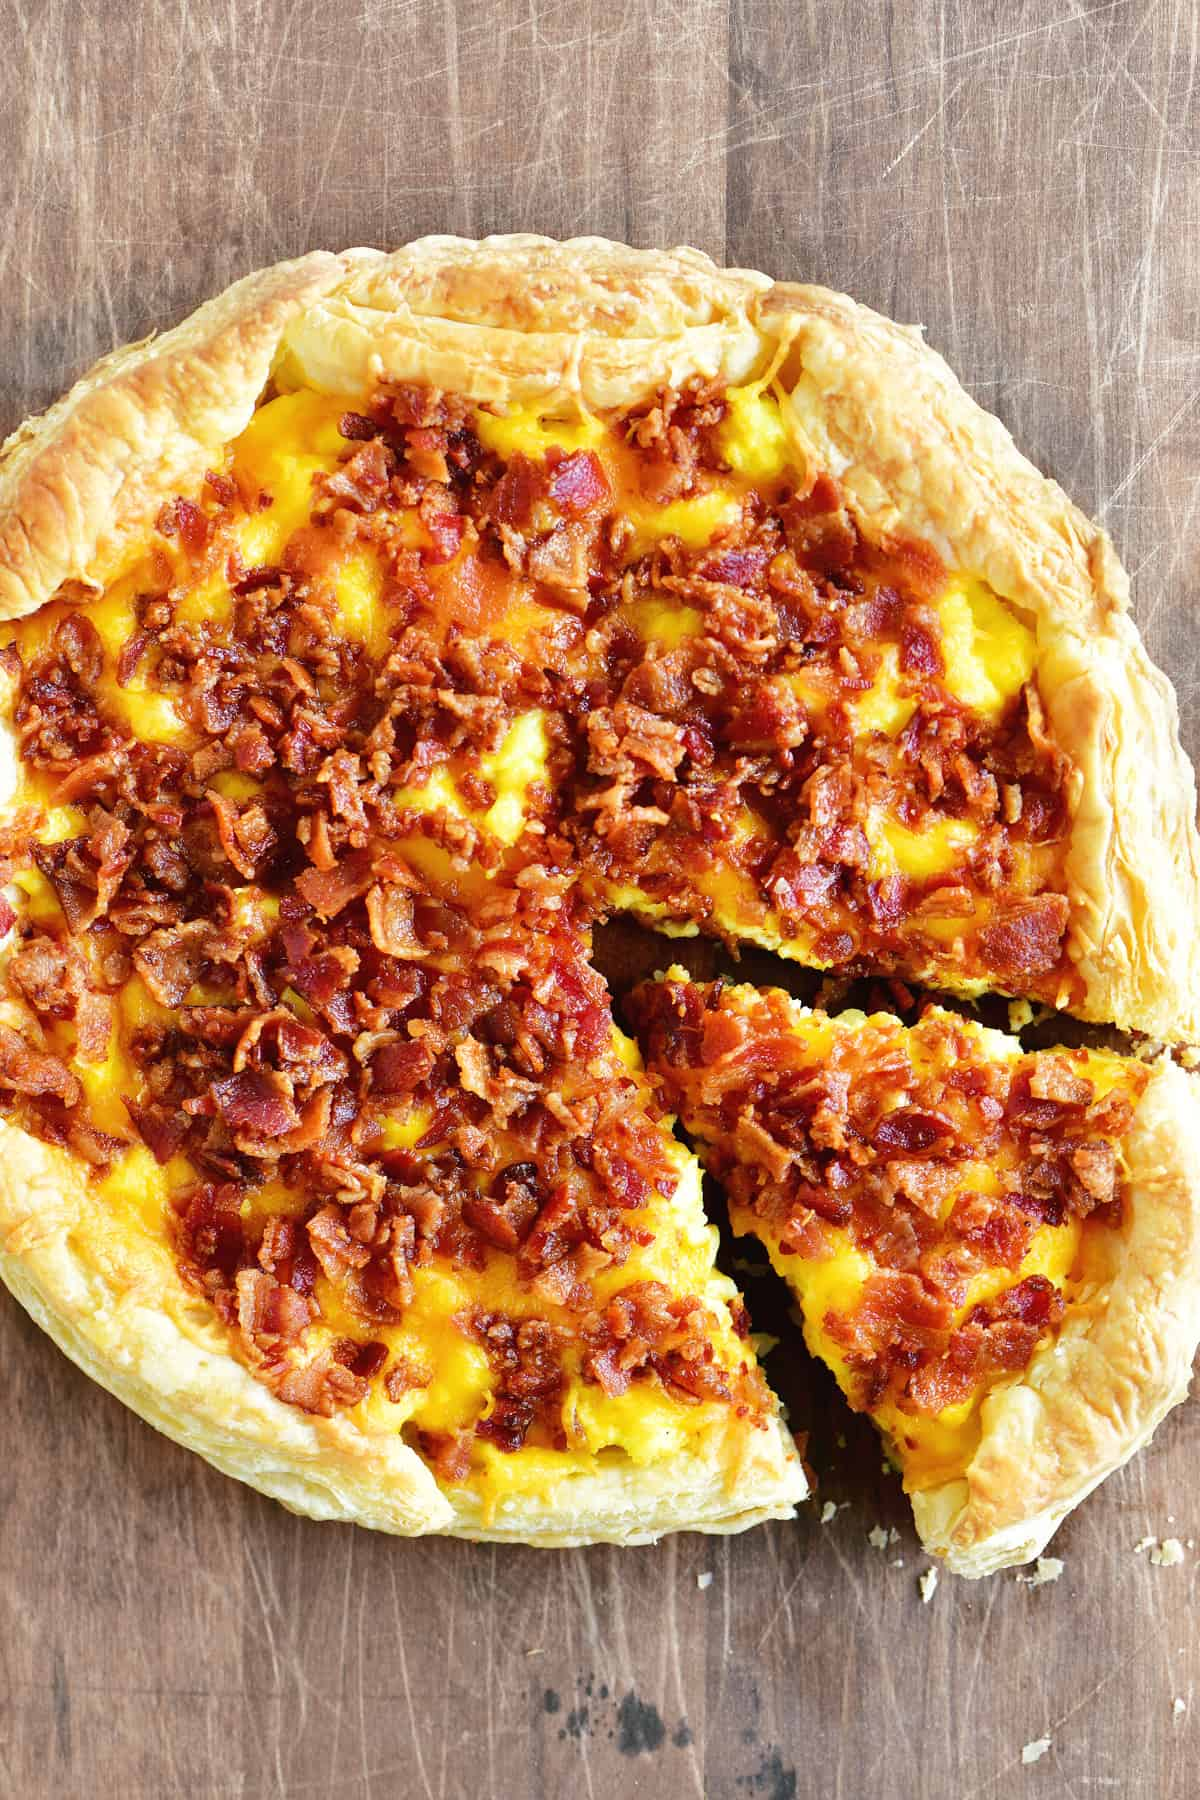 a topdown view of a bacon egg and cheese breakfast pizza